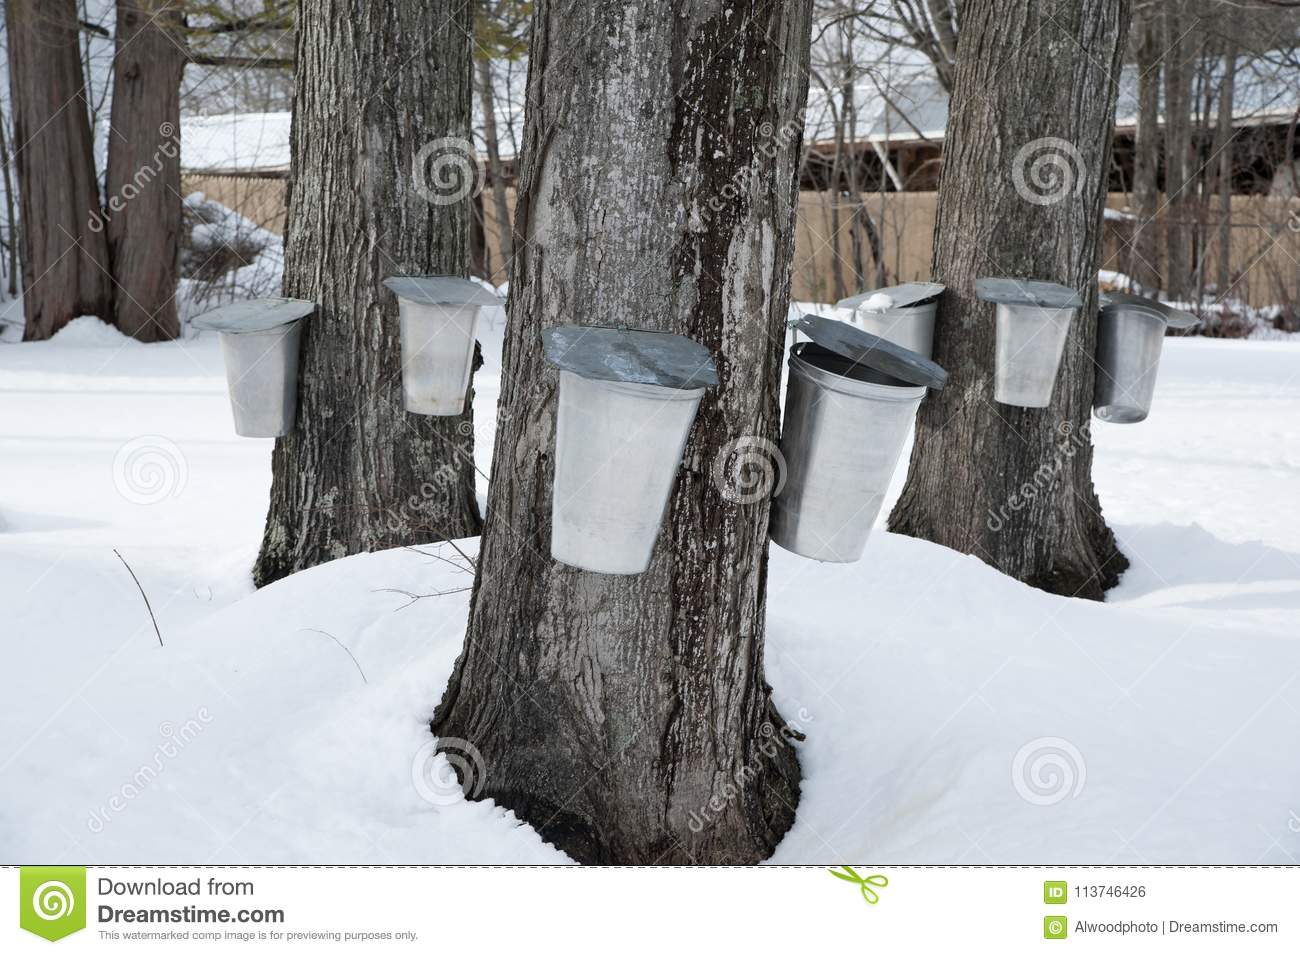 c91a092226f Traditional buckets are used to collect sap from maple trees by tapping the  trees during early spring in New England to make maple syrup and maple  sugar.